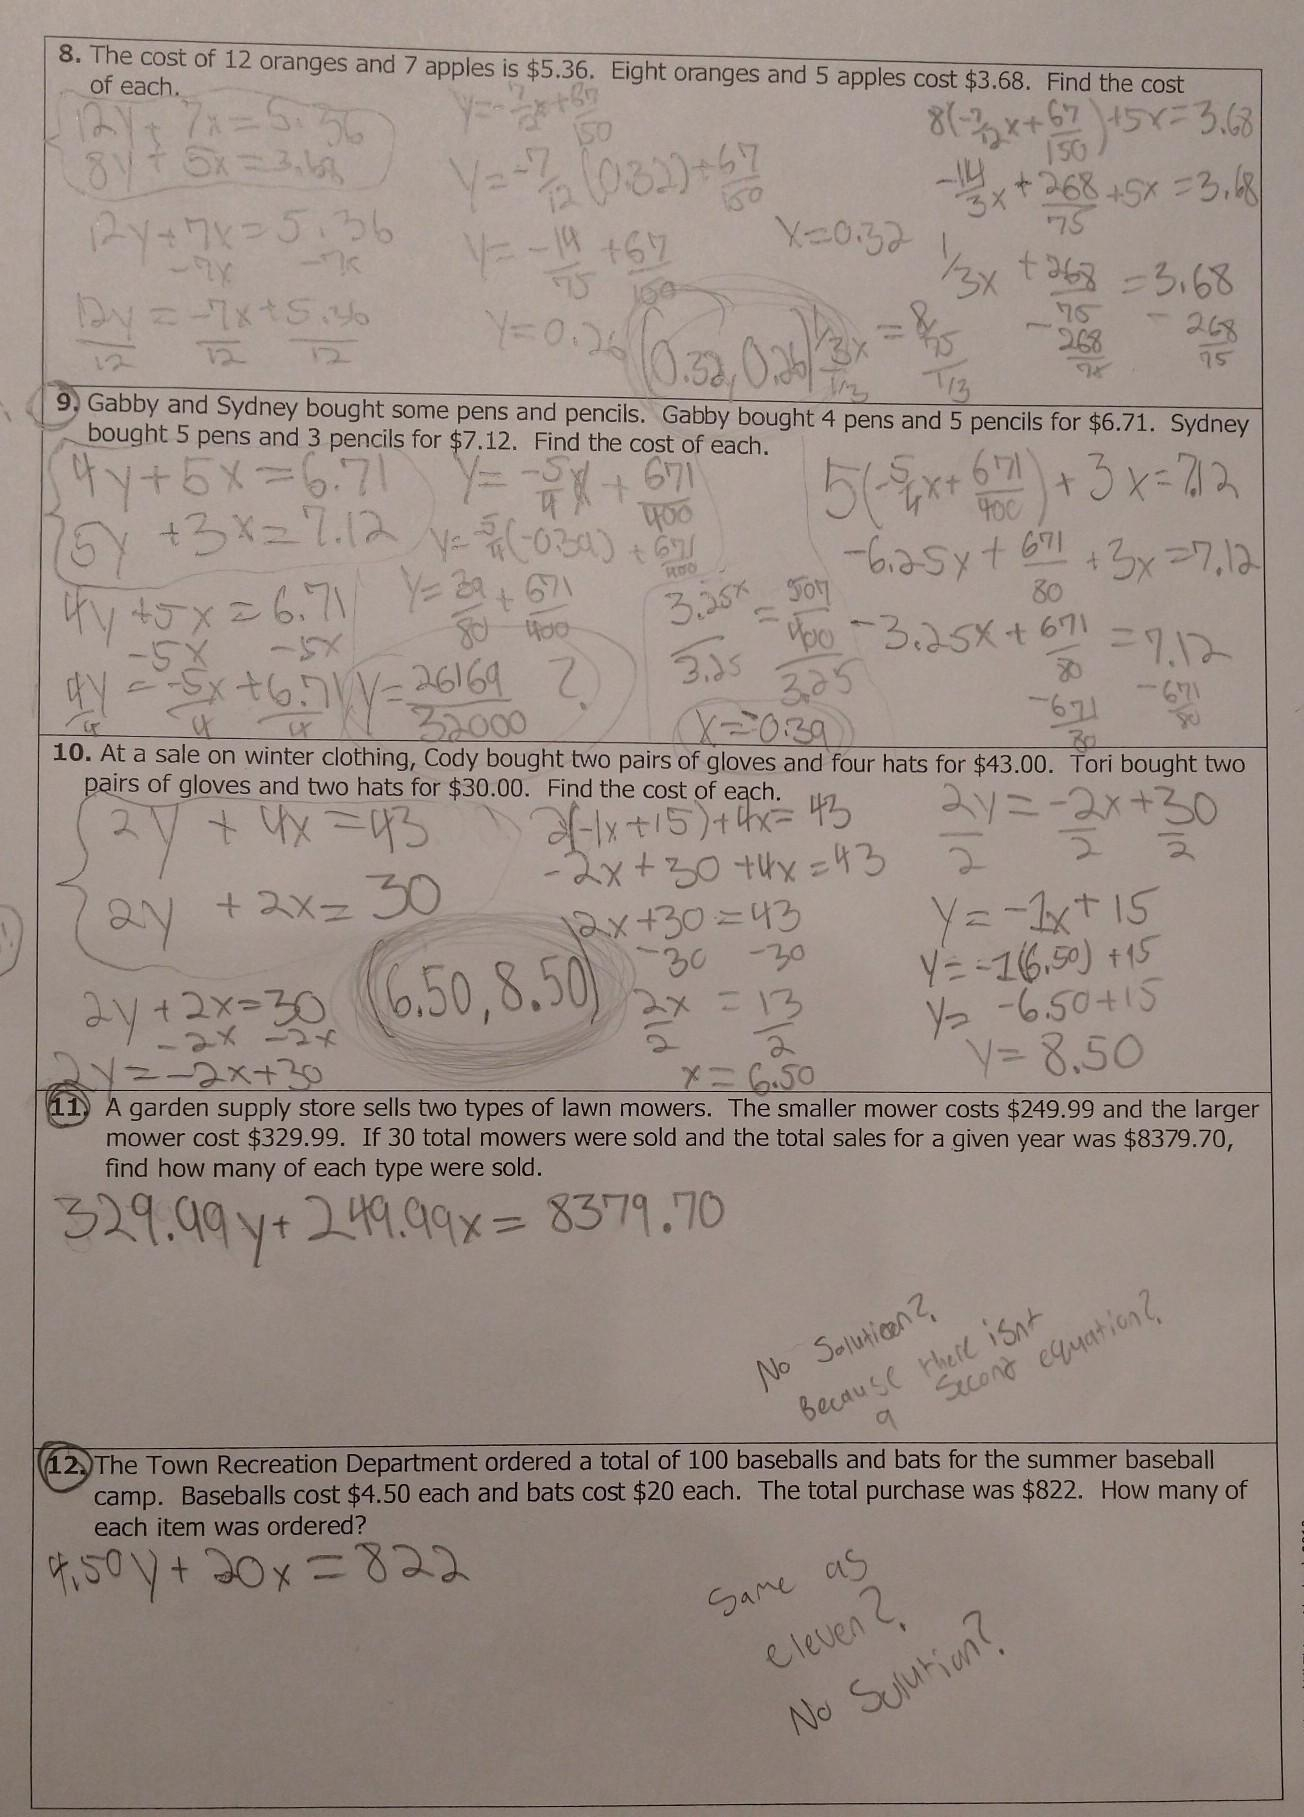 Please Help Need Someone To Check My Answers For If Anything